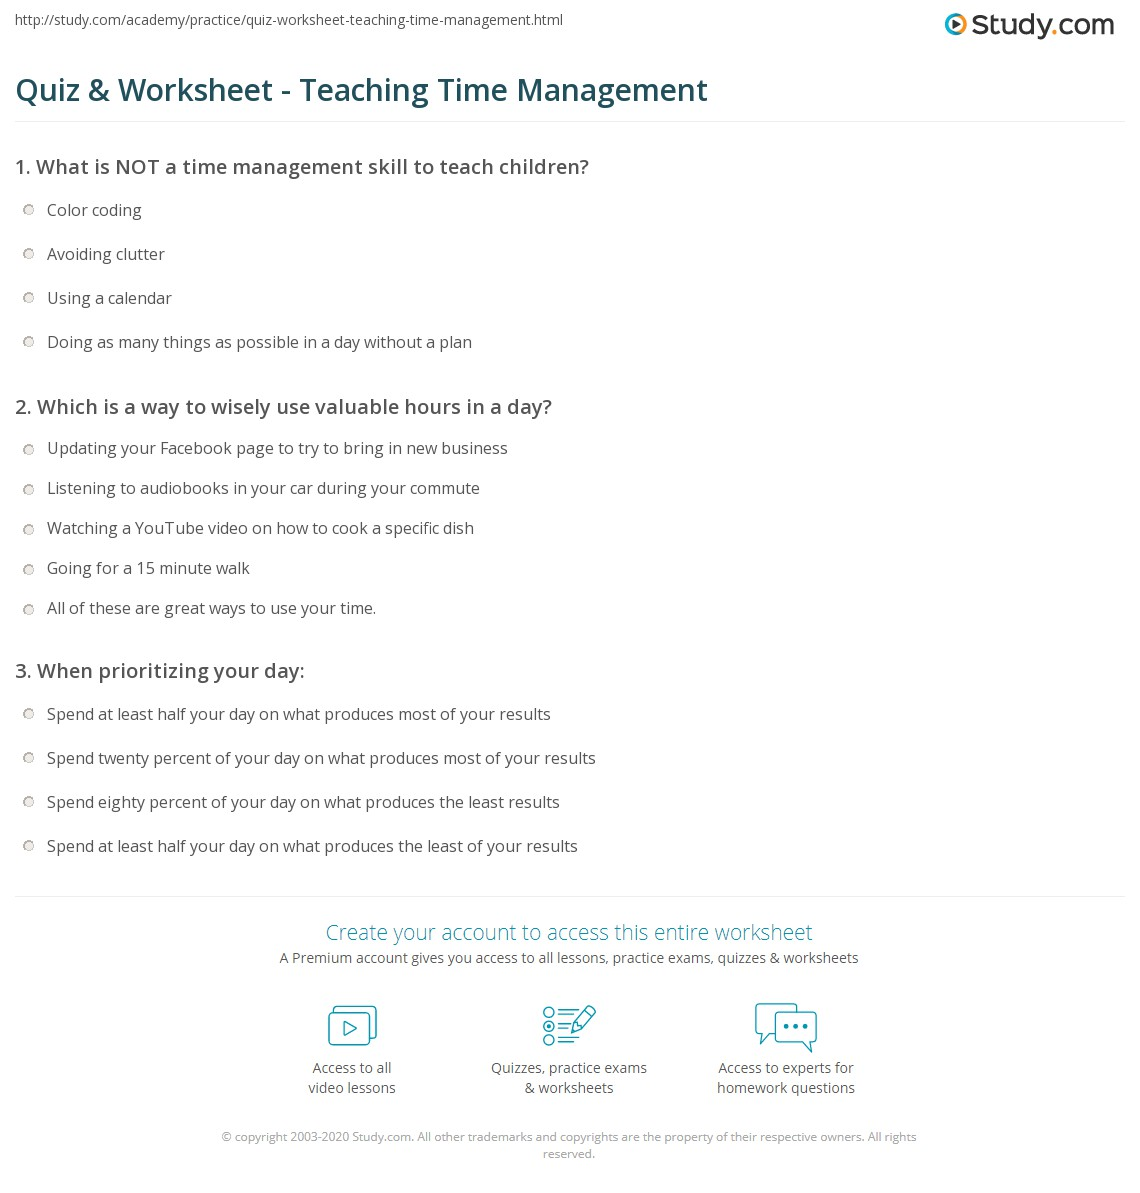 print how to teach time management worksheet - Time Management Worksheet